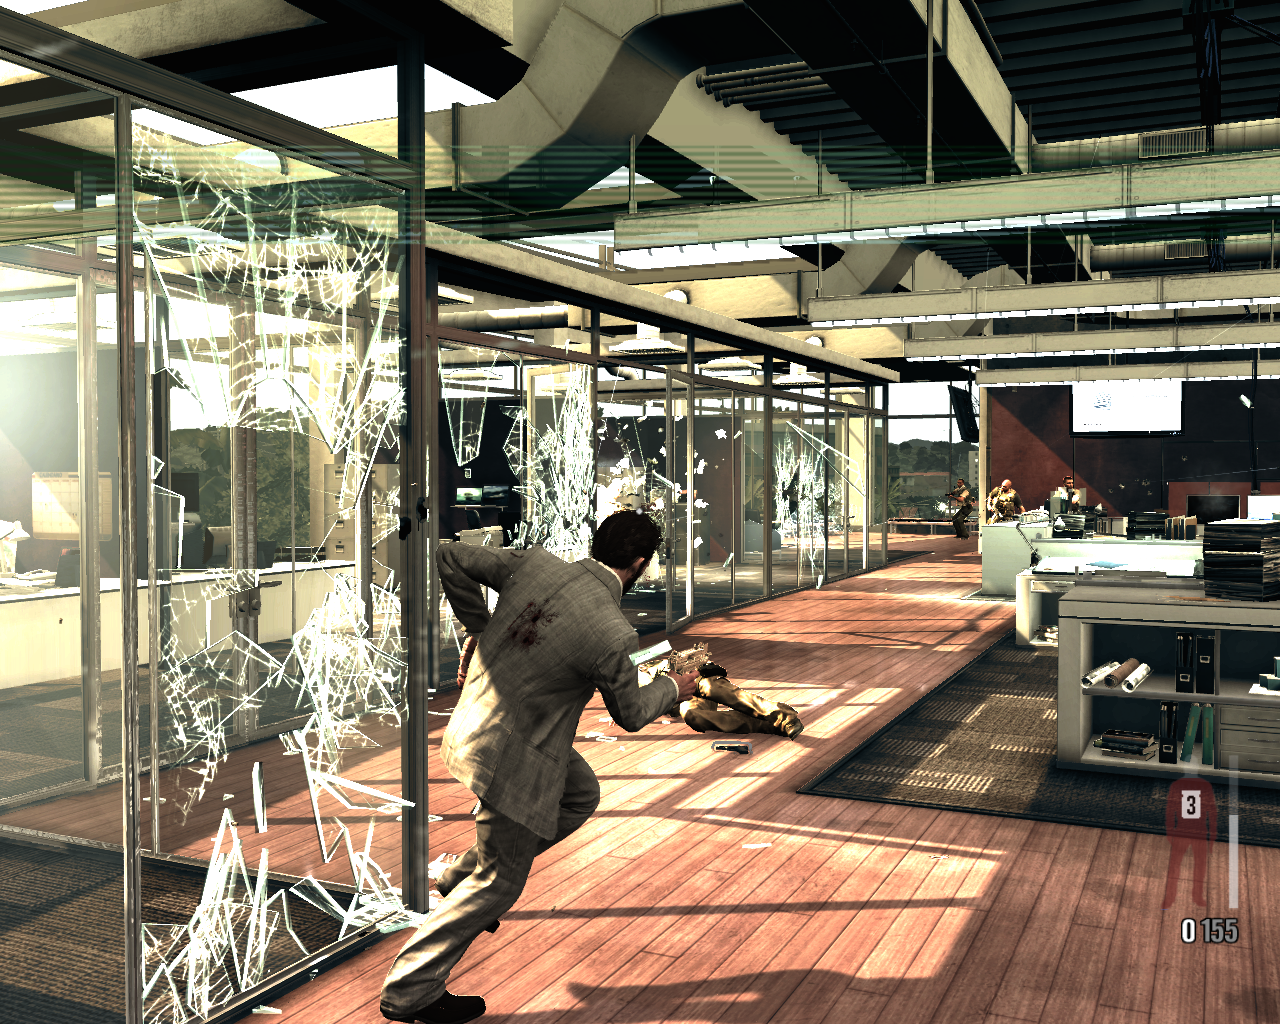 Max Payne 3 Windows A gunfight in an office with glass walls - spectacular!